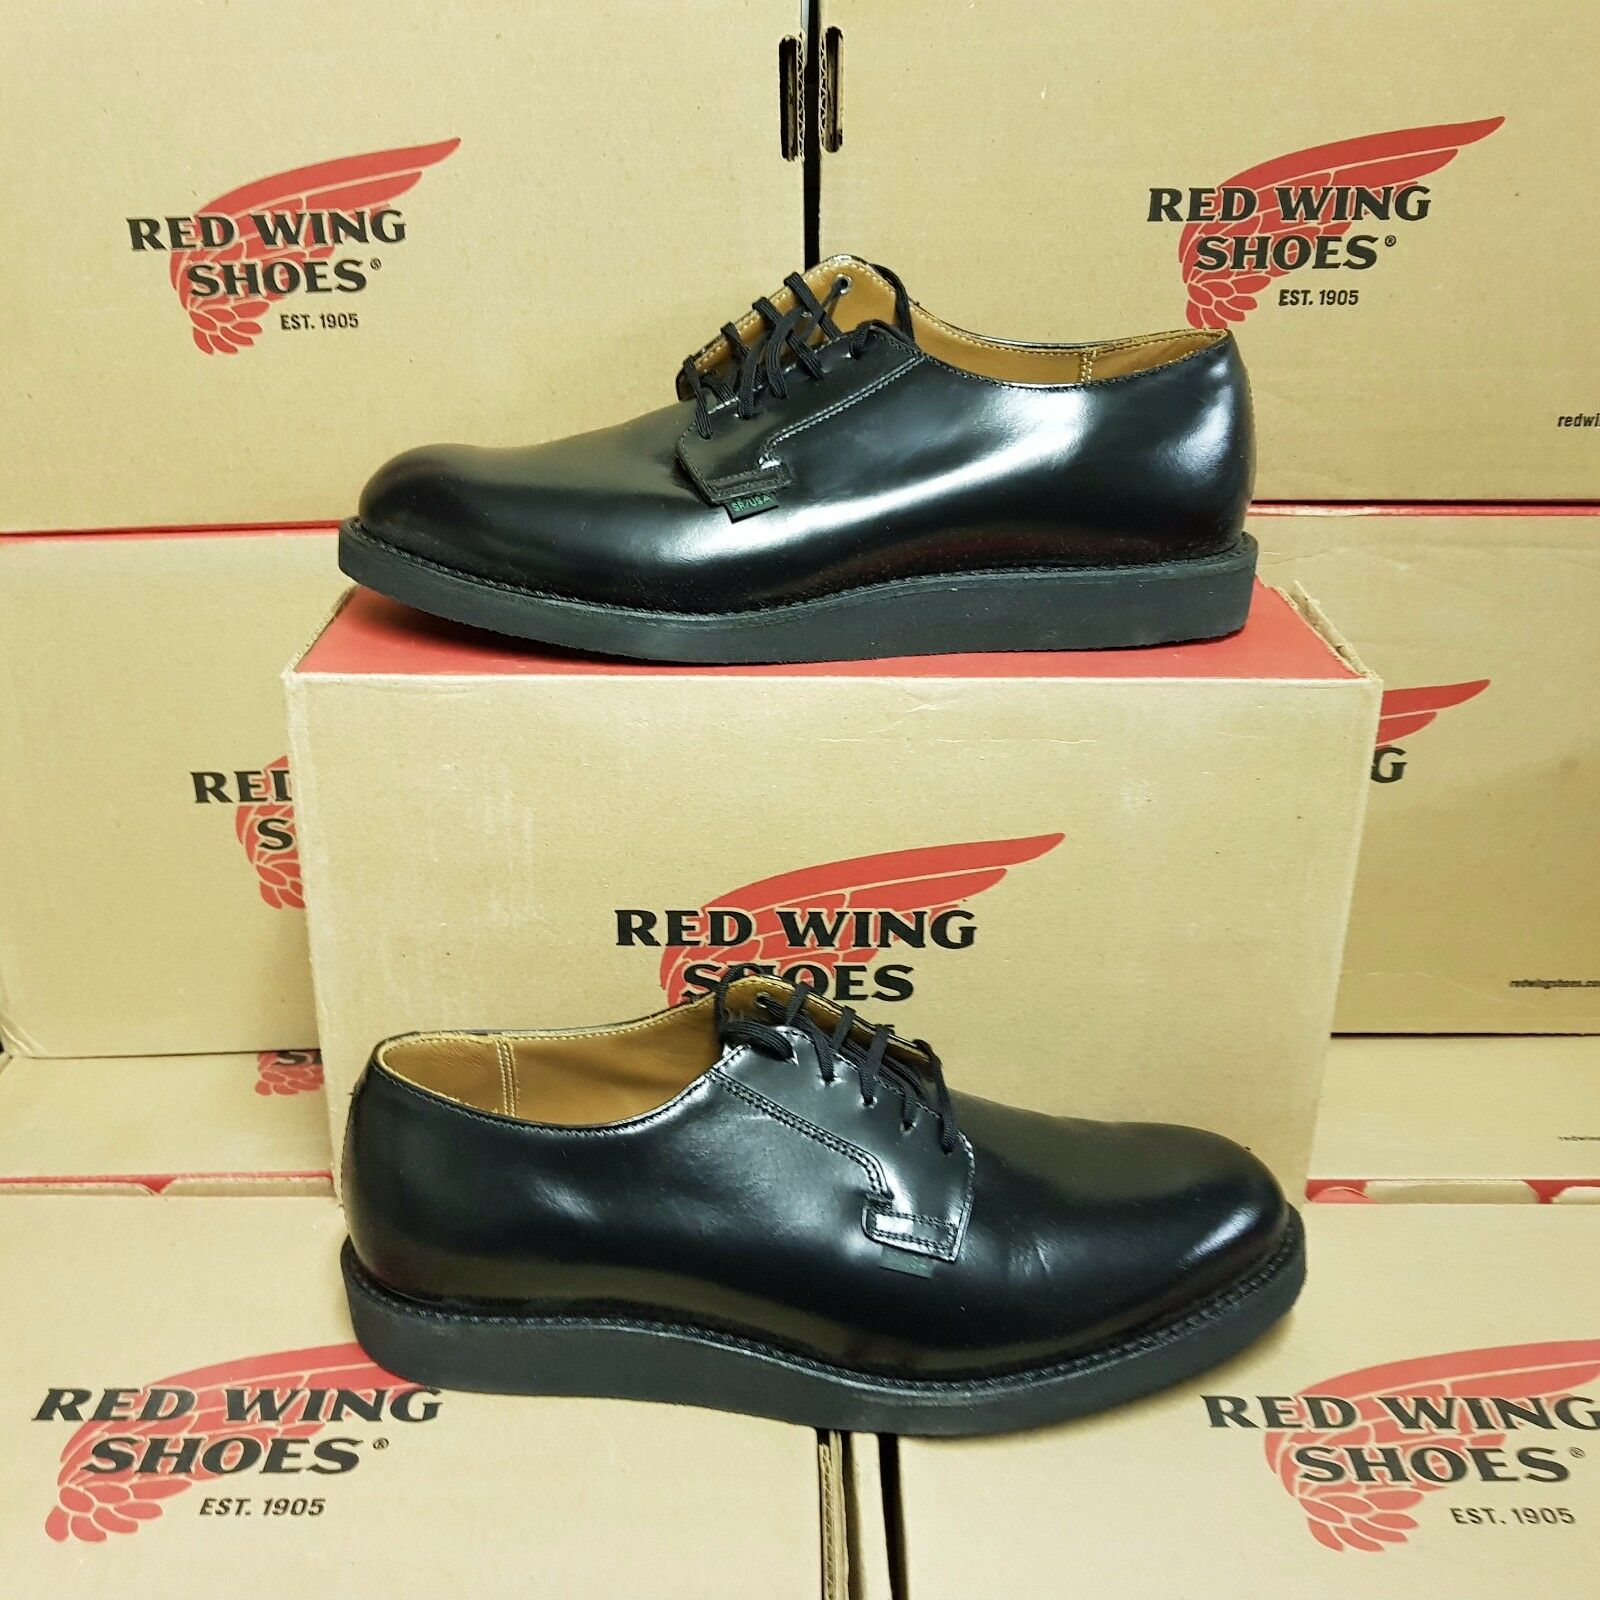 RED WING SHOES 101 Postman Postman Postman Oxford Uomo leather shoe US 13 EUR 47 (pv:) c32872